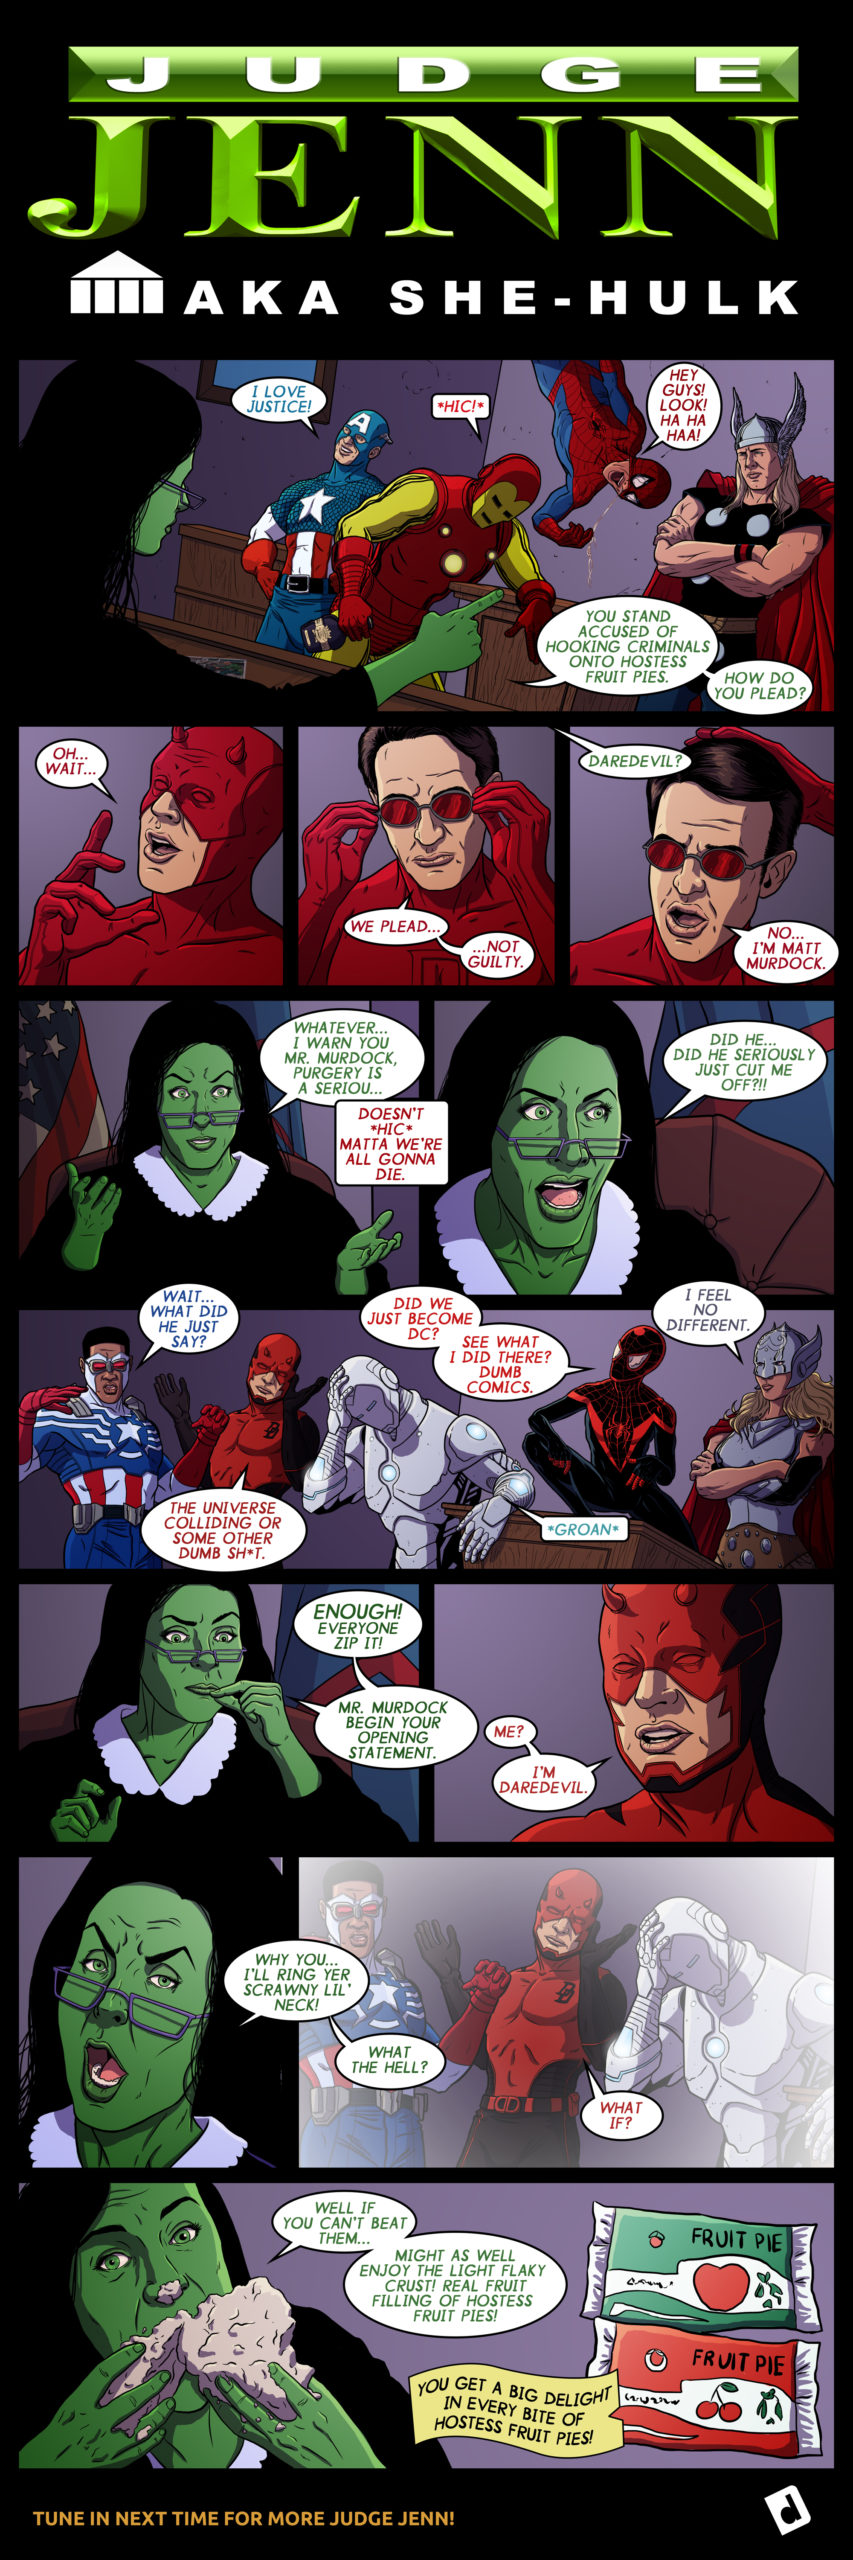 She-Hulk Hostess